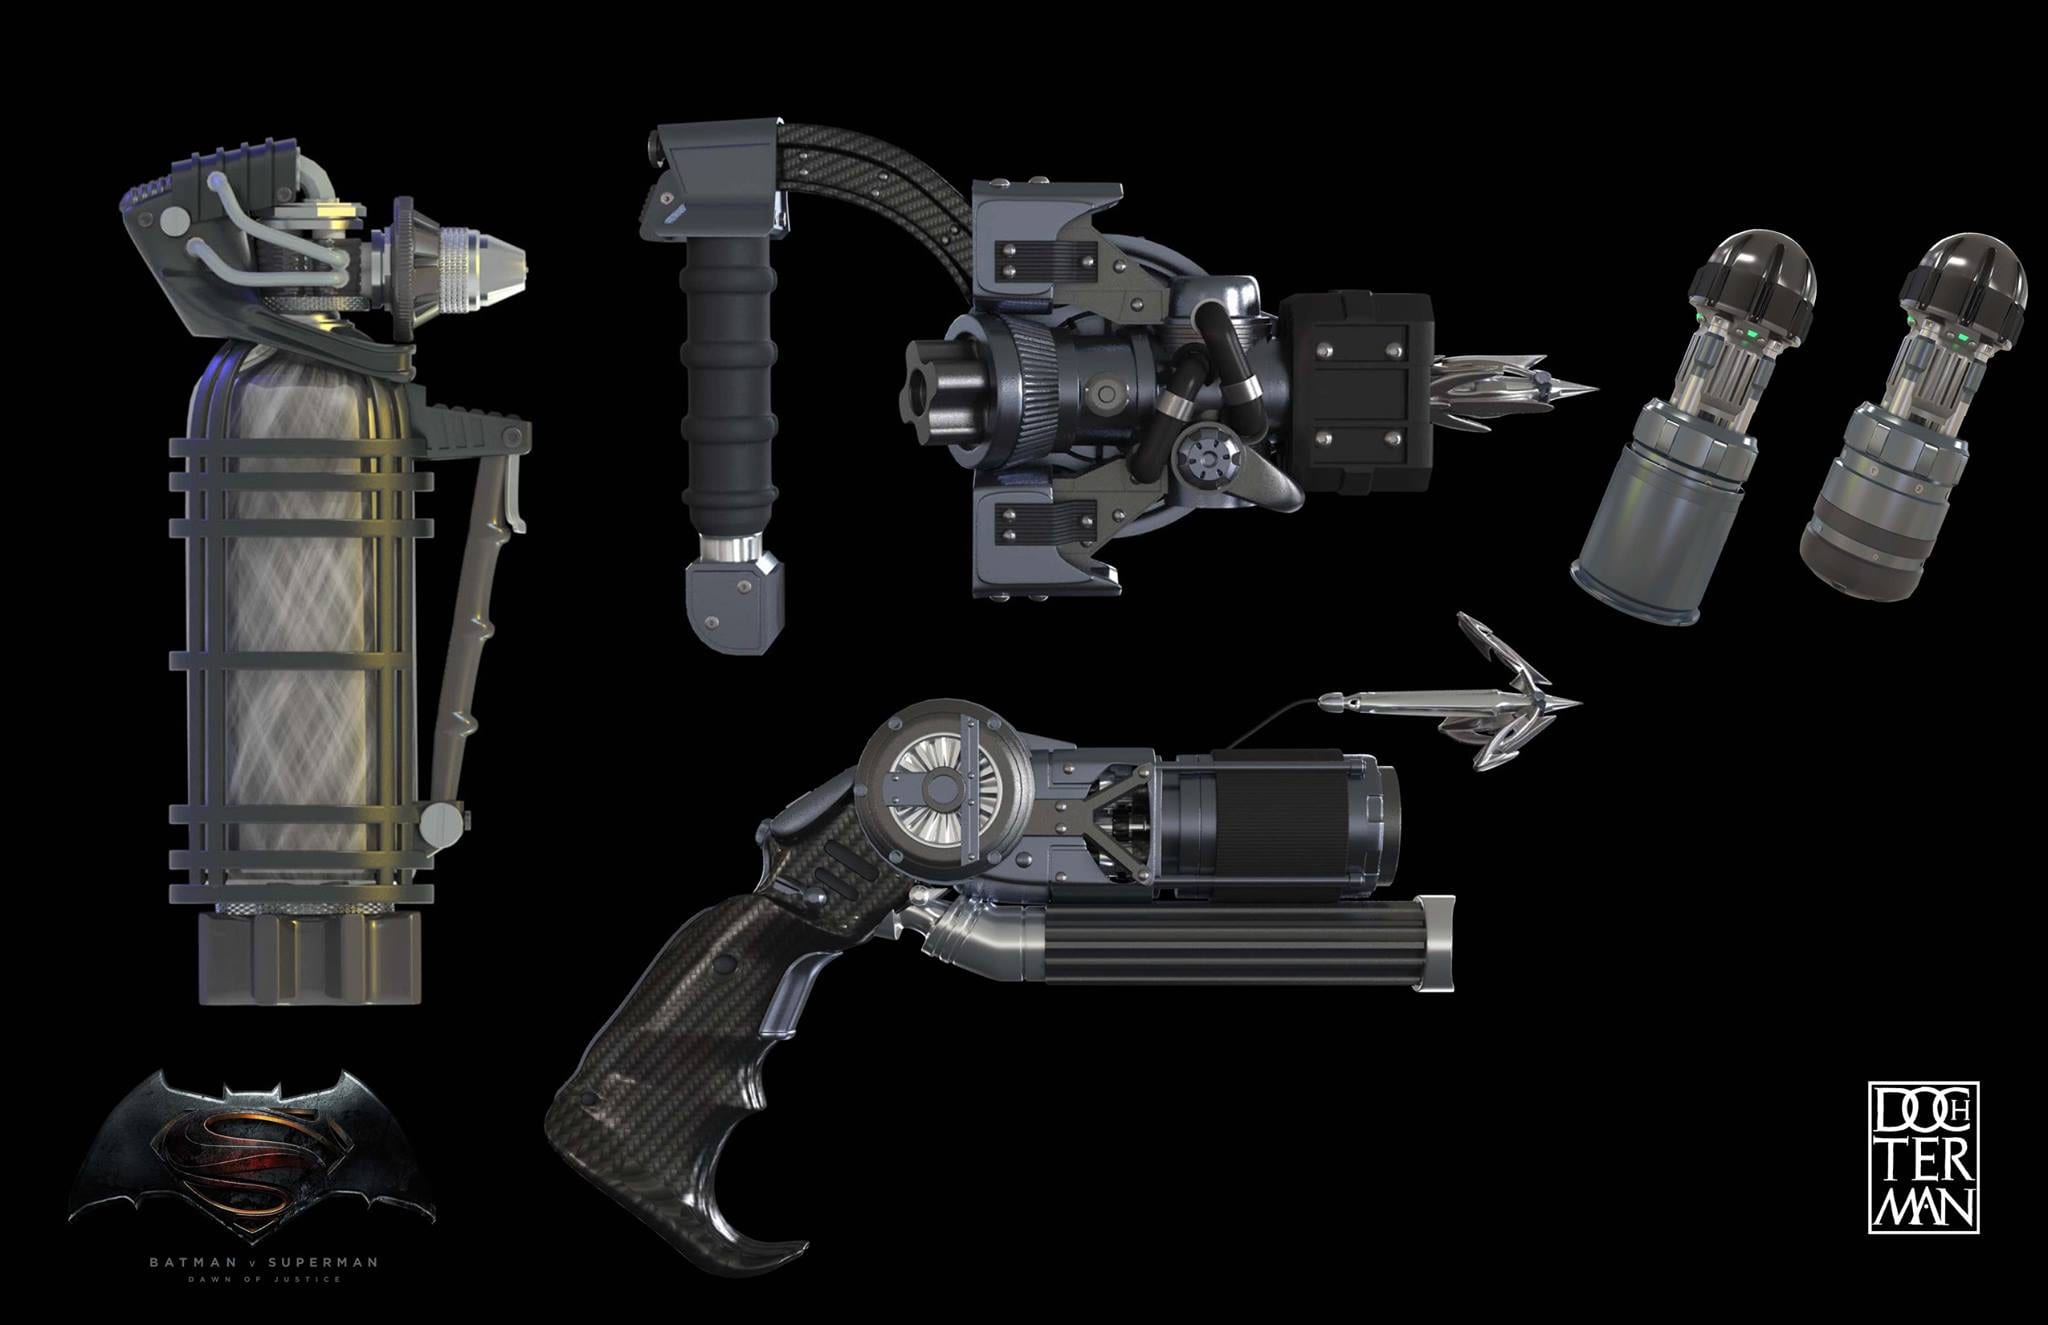 gadgets and their designs for it watch this video for the details